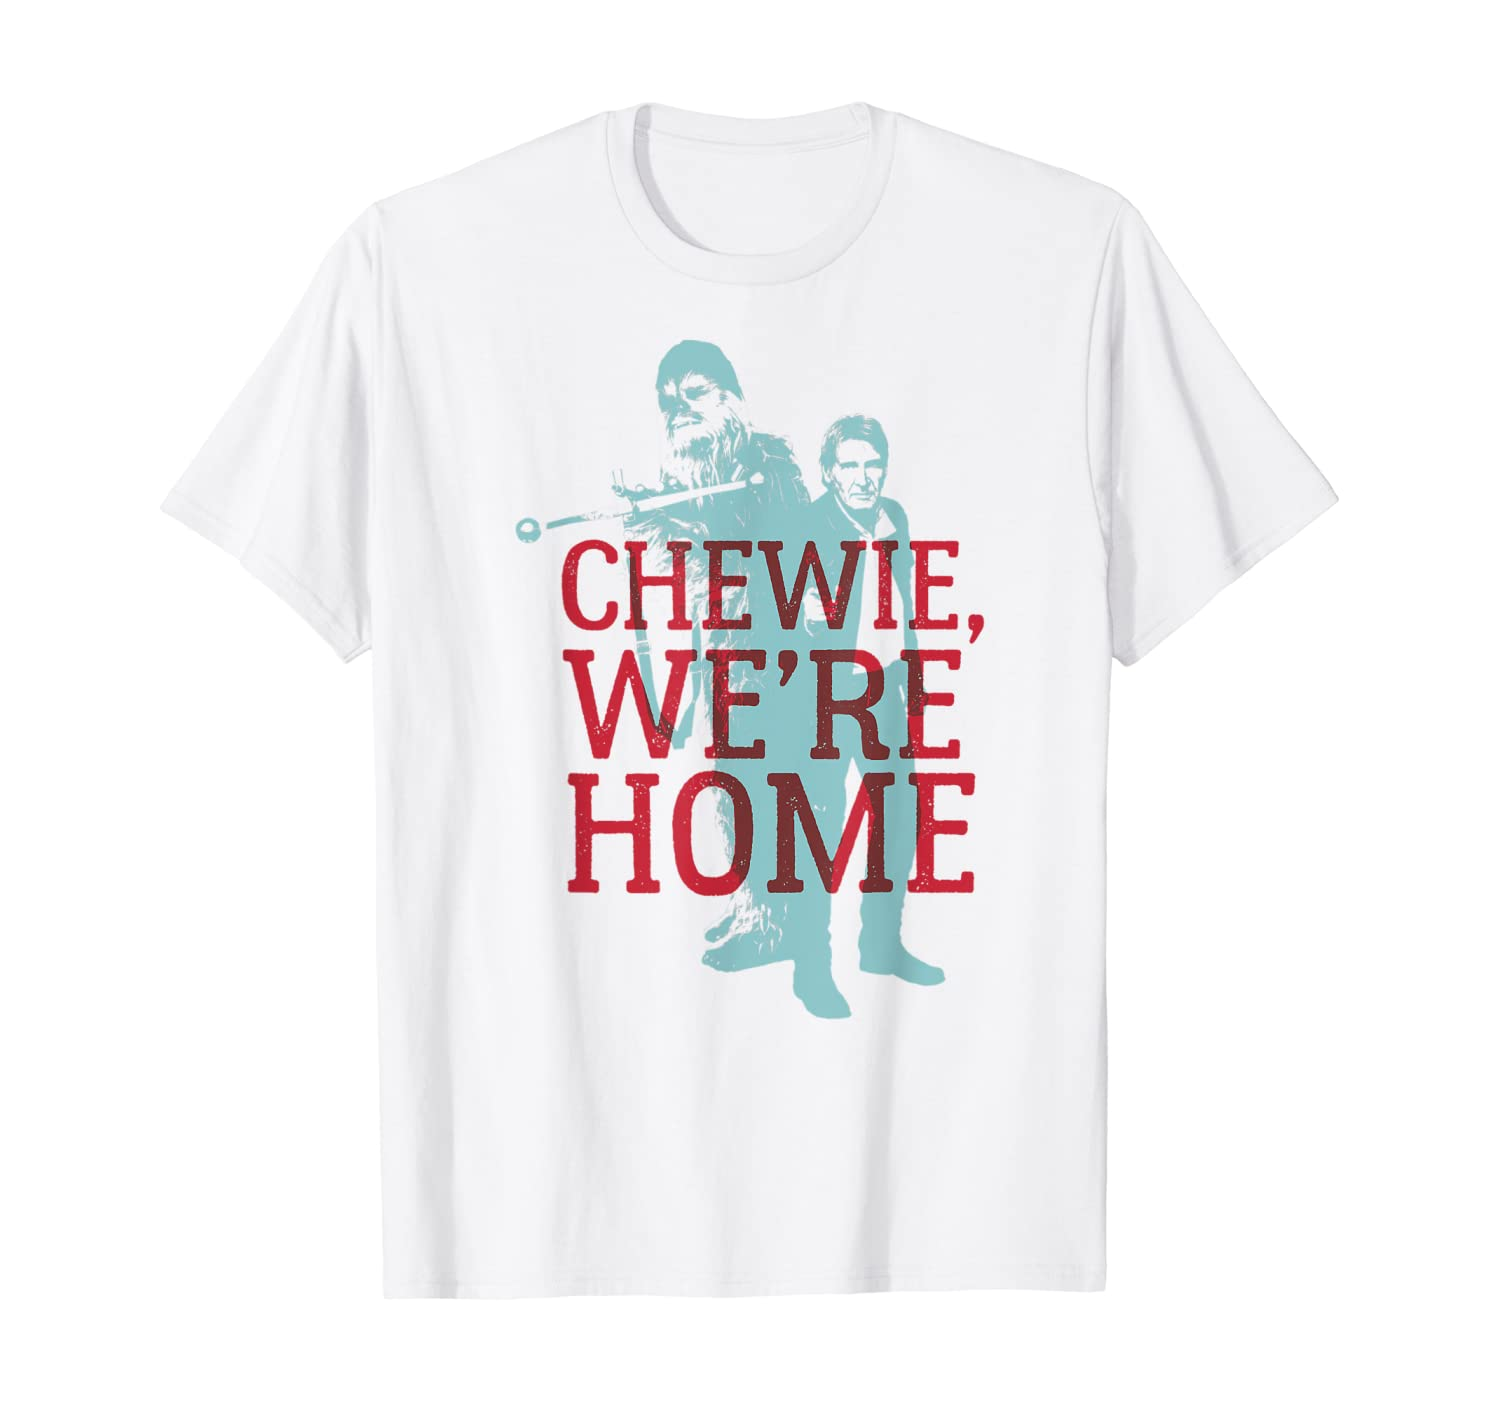 Star Wars Han Solo Chewie We're Home Graphic T-Shirt